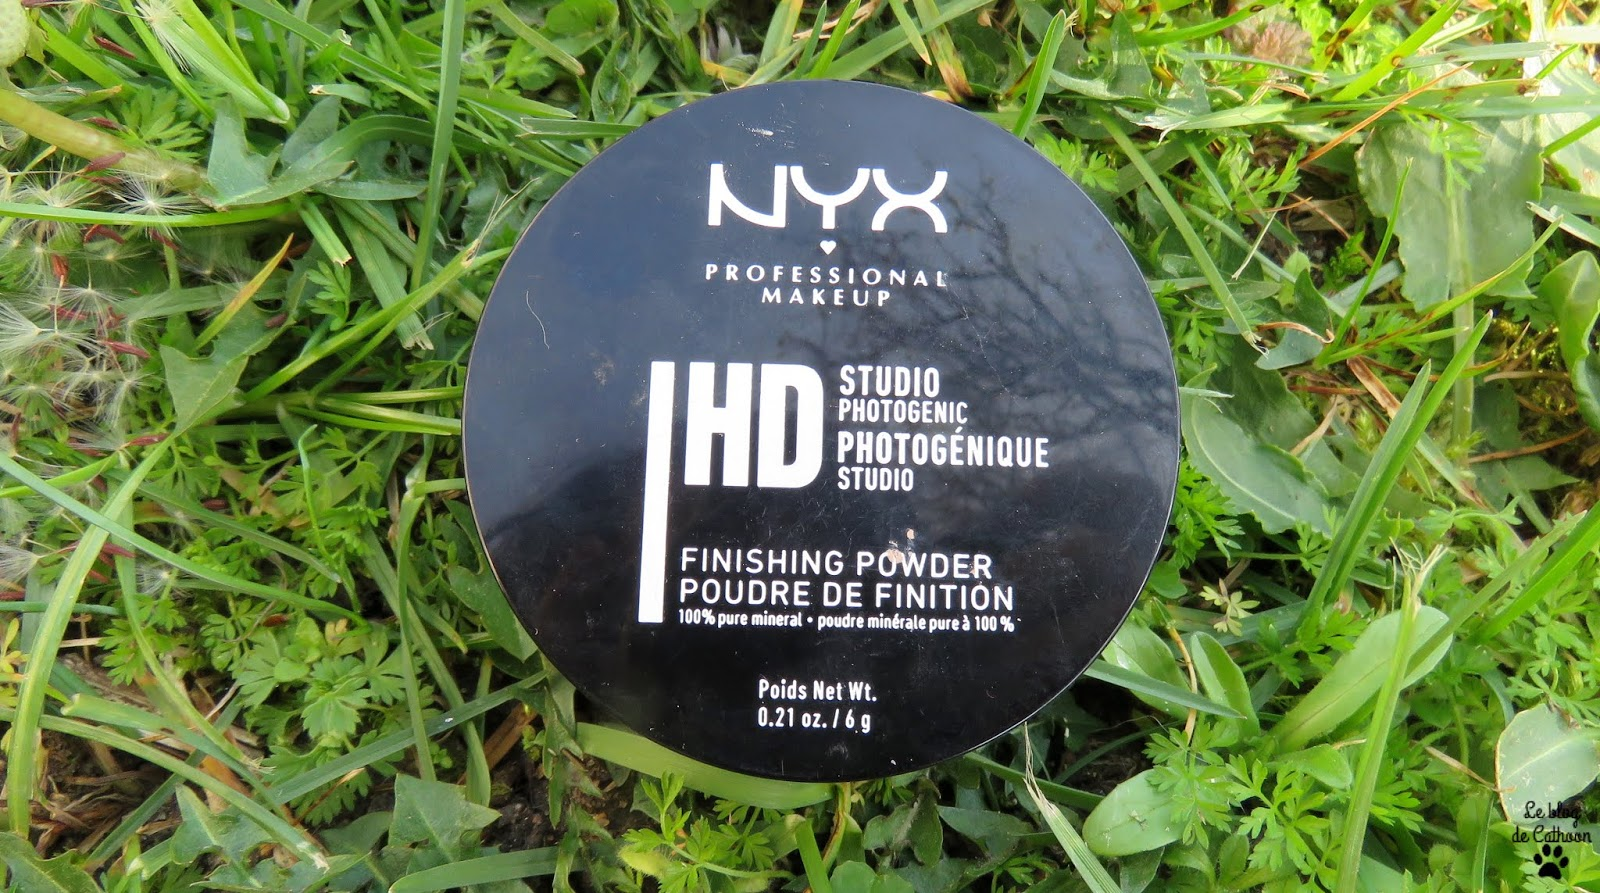 HD Studio Photogenic - Poudre de Finition - NYX